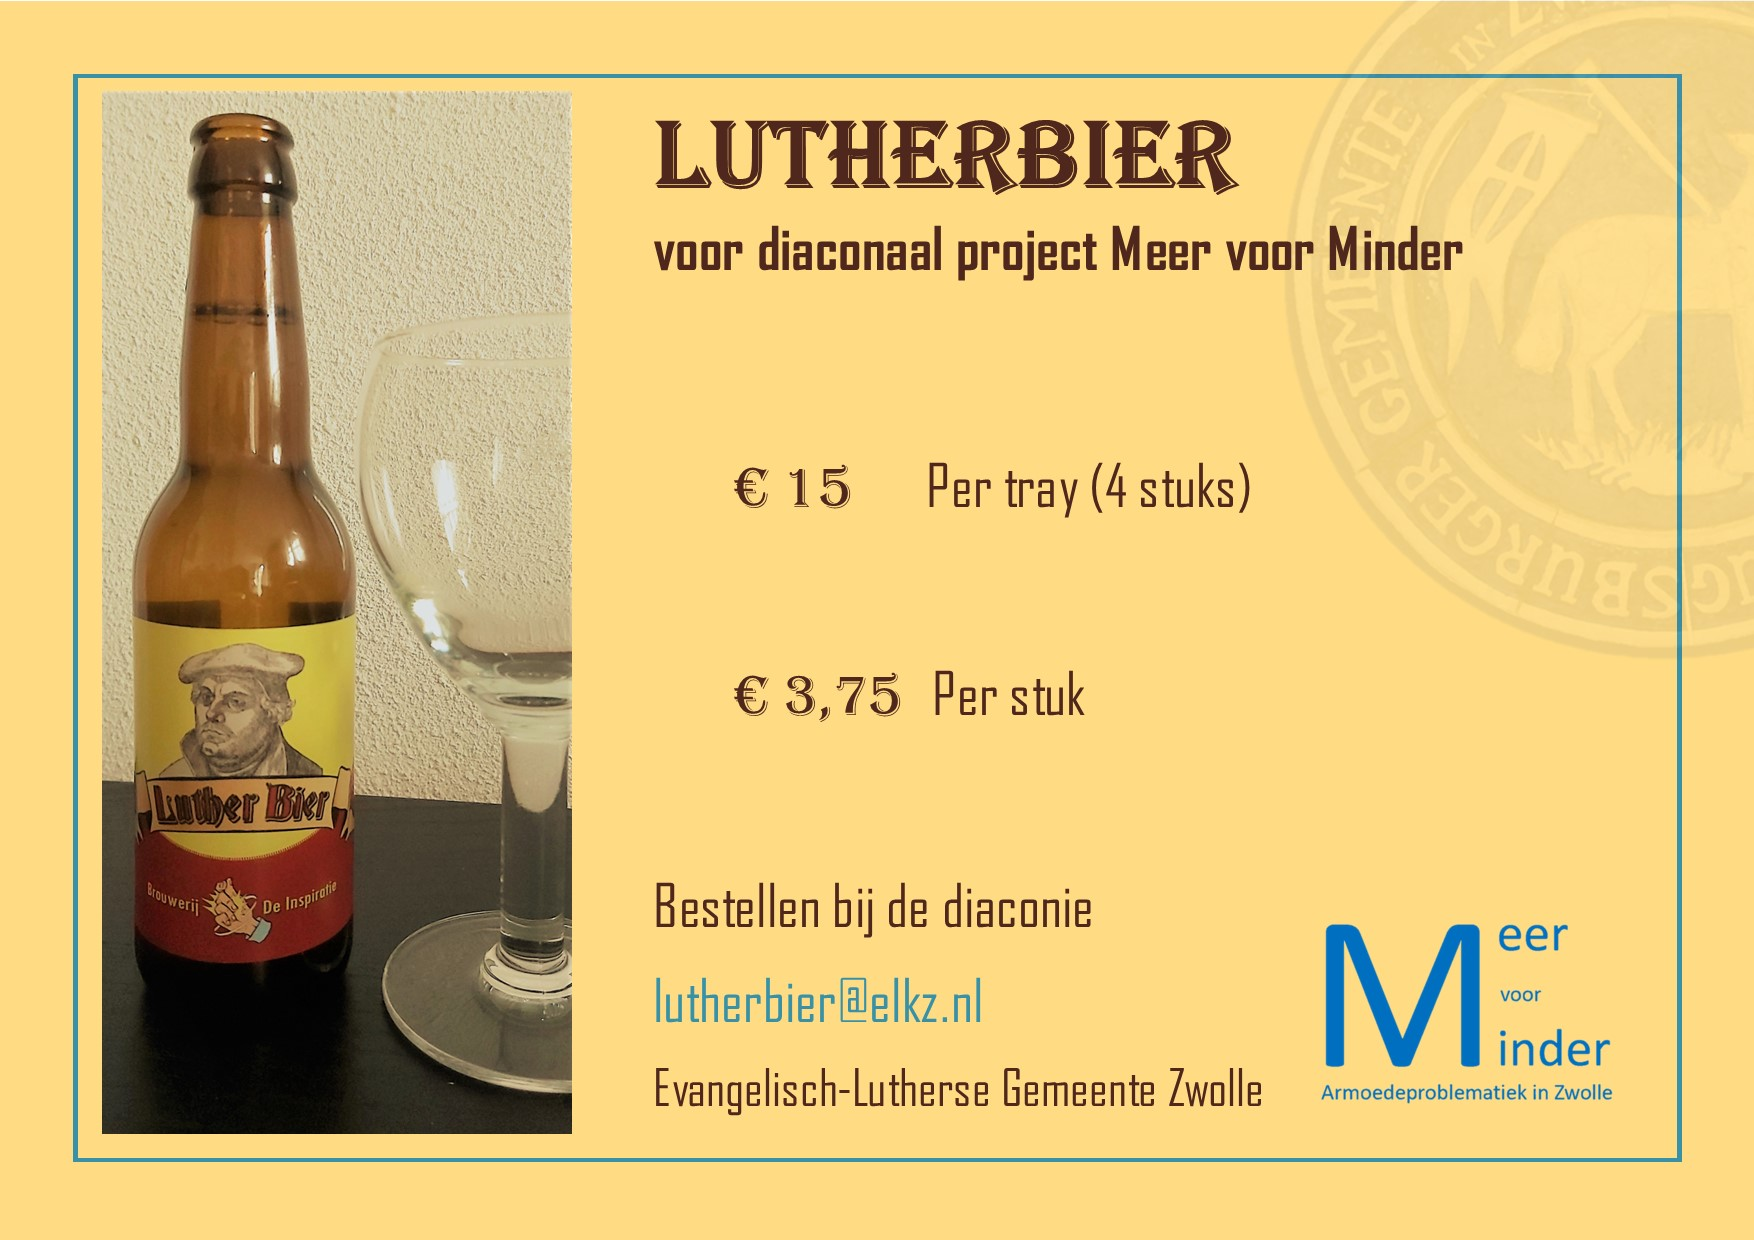 Lutherbier